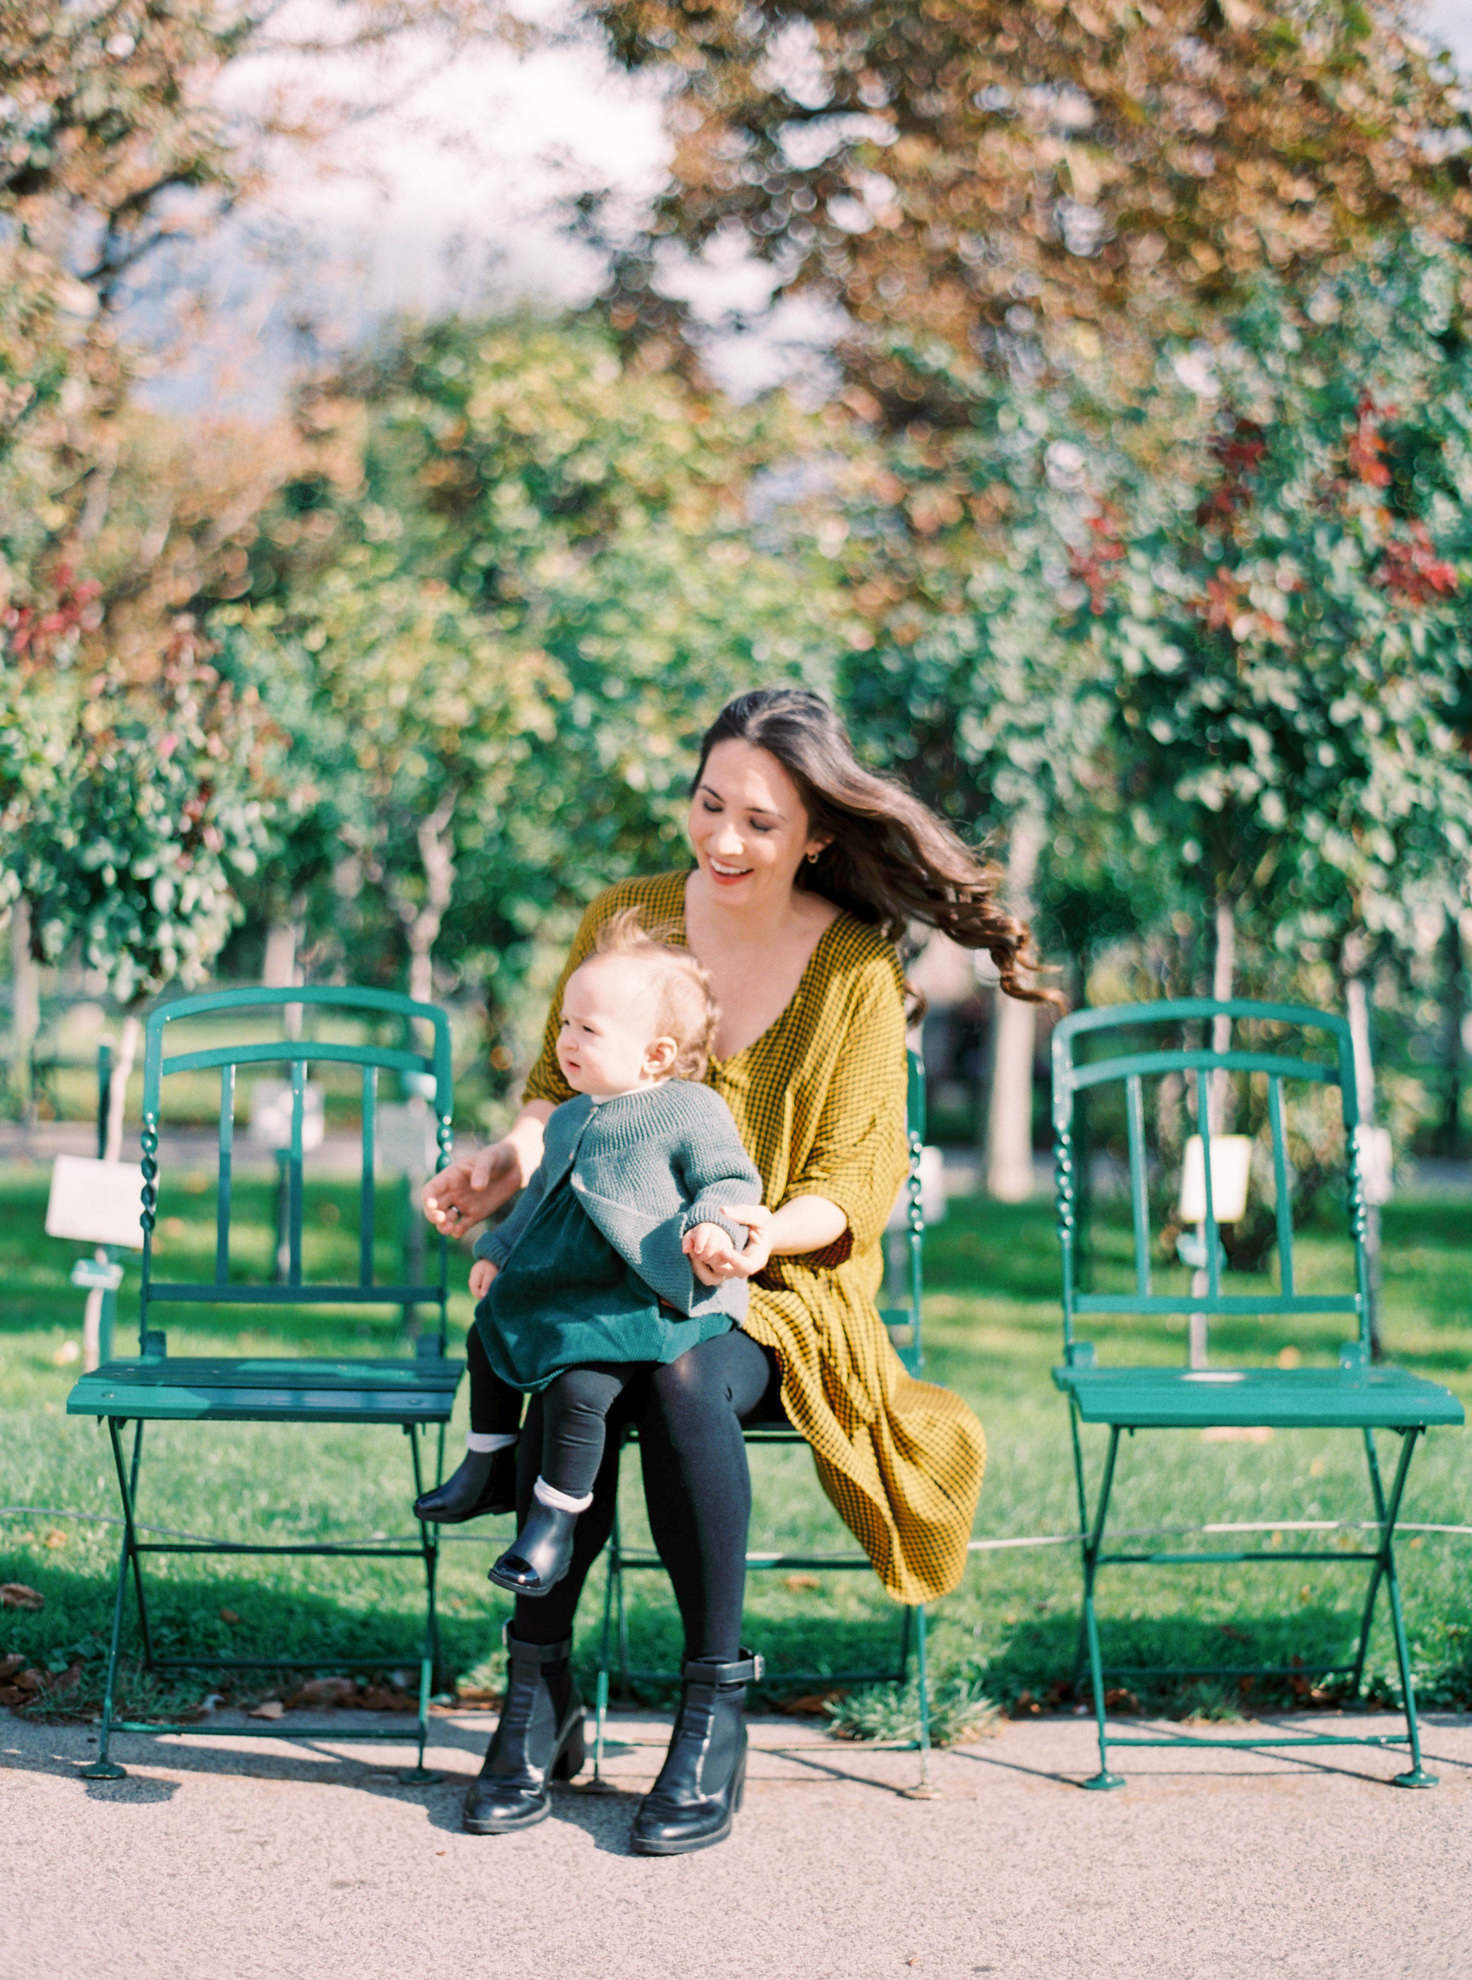 15 Mom Daughter Viennese Portrait Session in Volksgarten by Tony Gigov